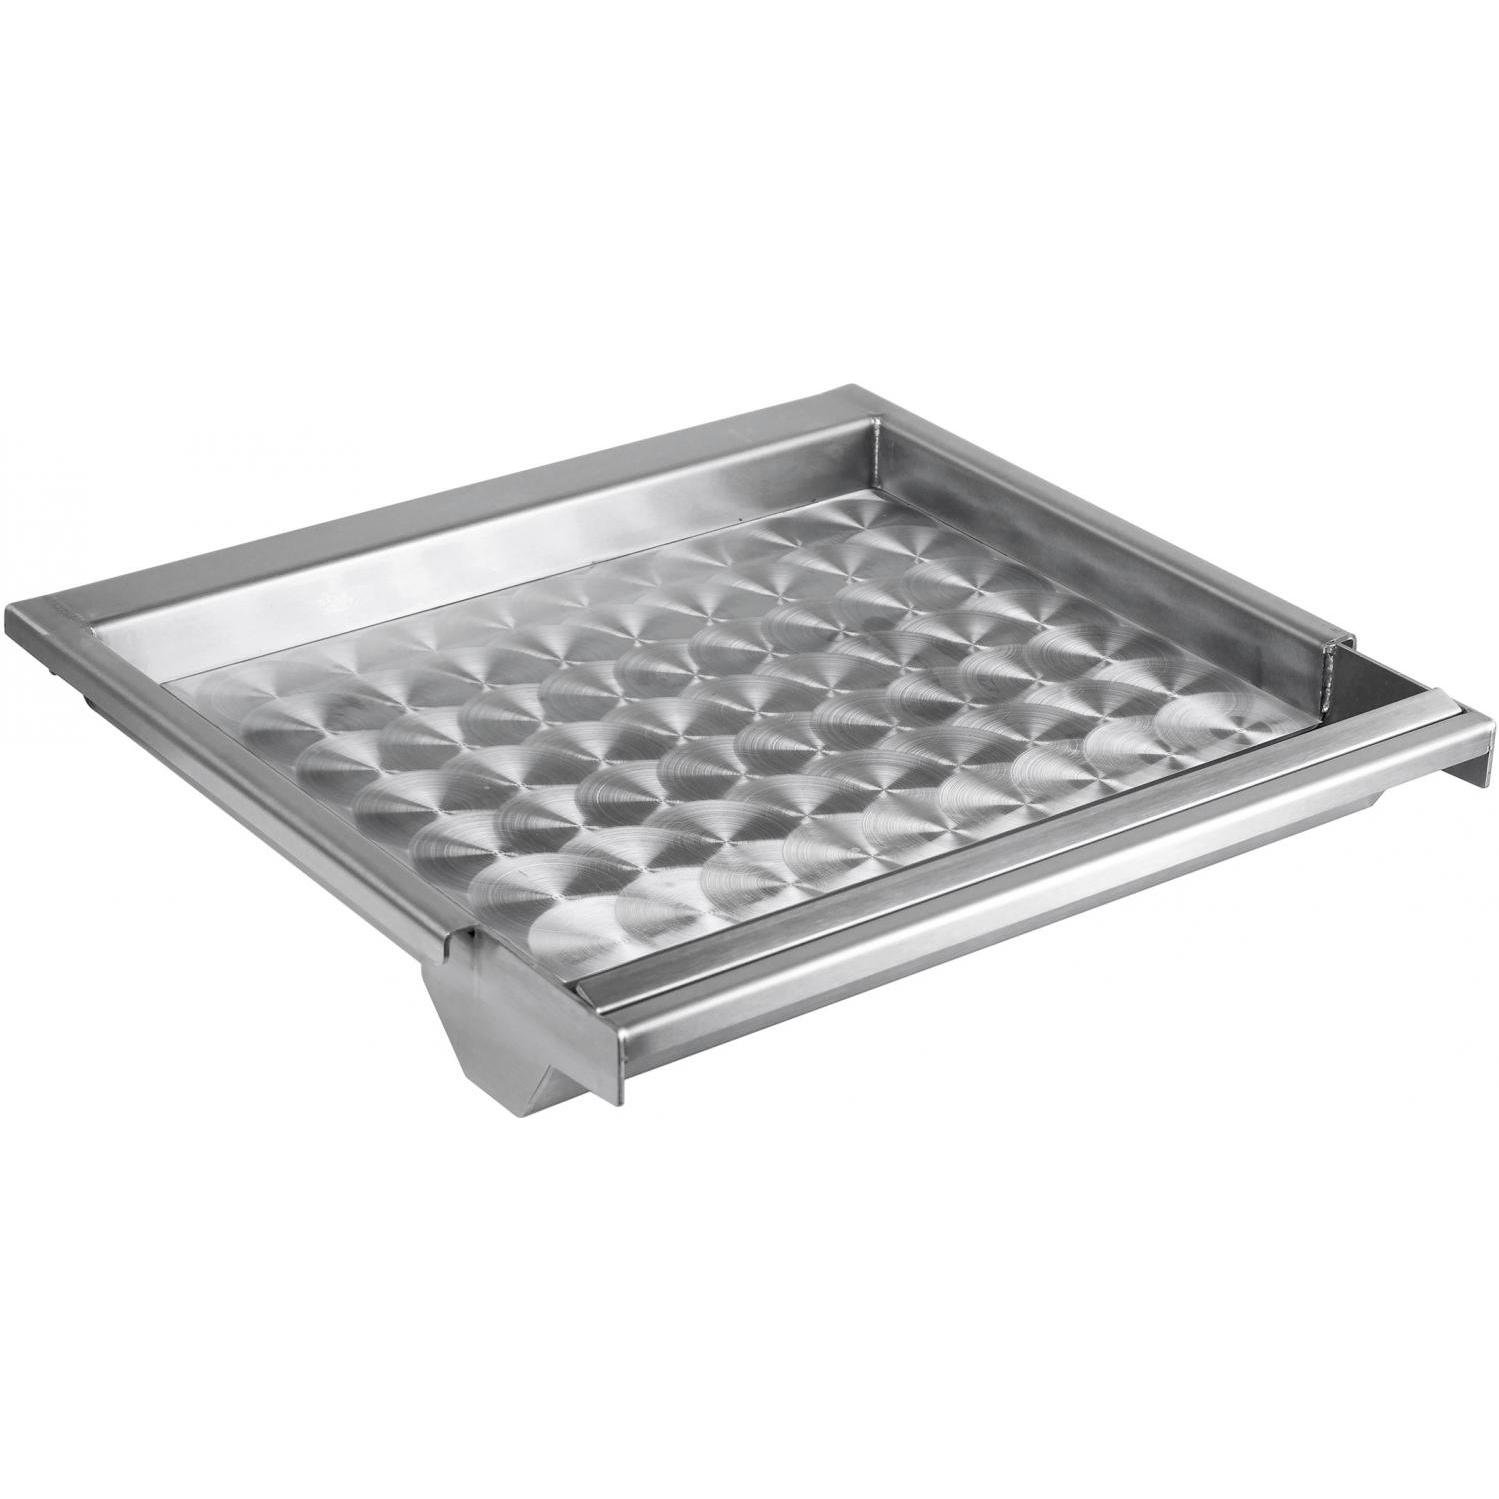 Fire Magic Stainless Steel Griddle For Echelon & Aurora A790, A660, A530, Power Burners, & Double Searing Station - 3516